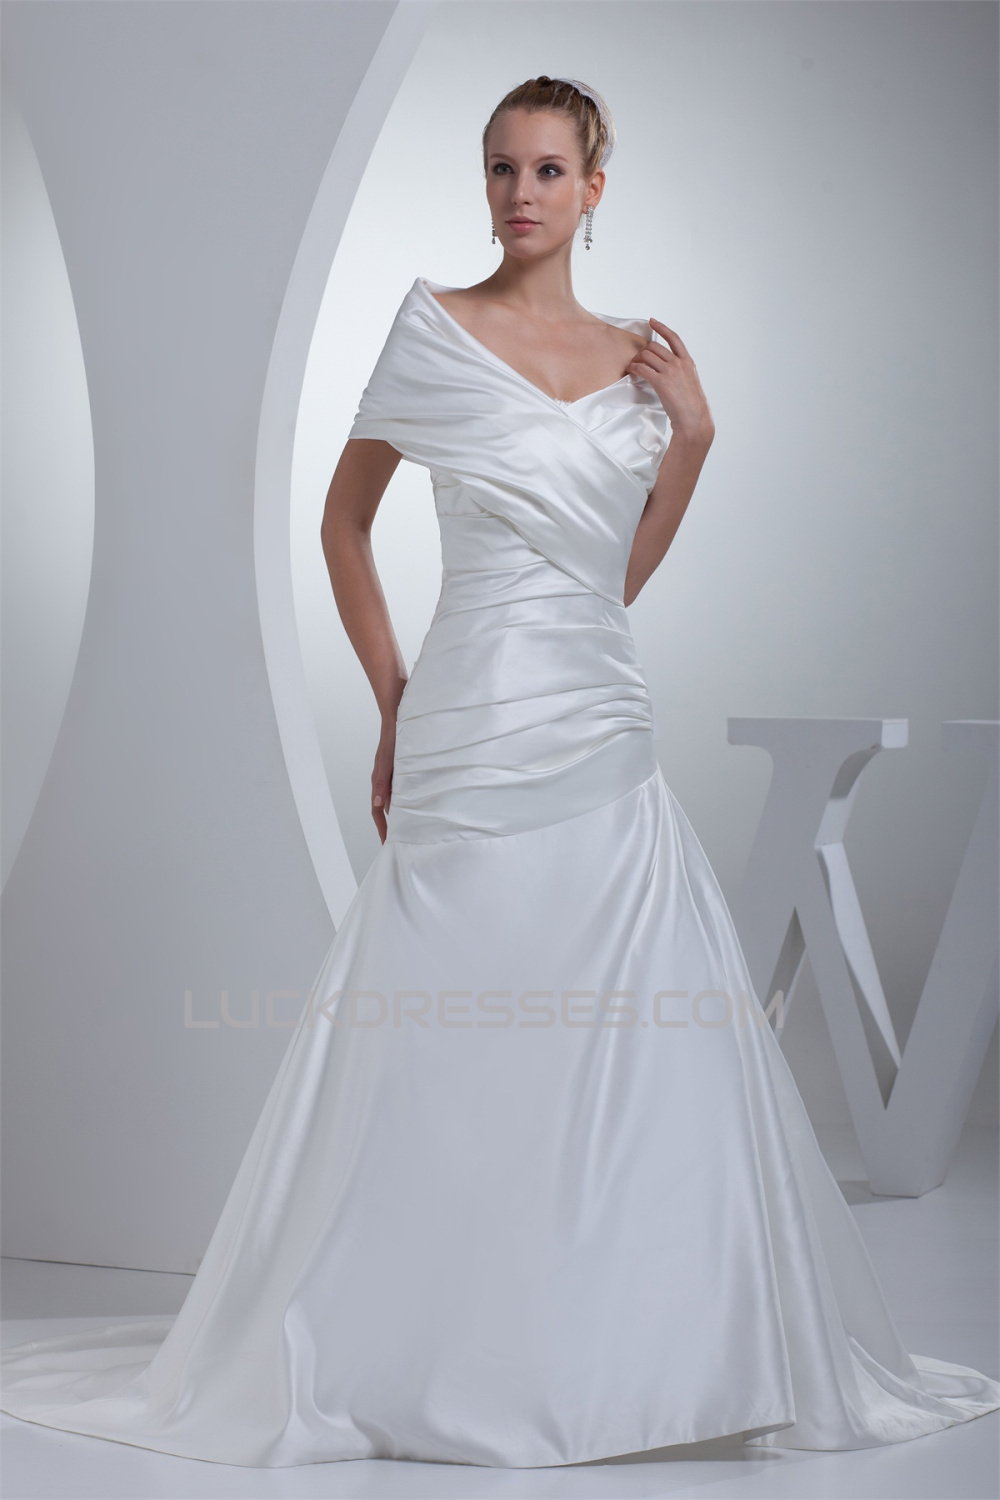 A-Line Portrait Beautiful Short Sleeve Satin Wedding Dresses 2030072